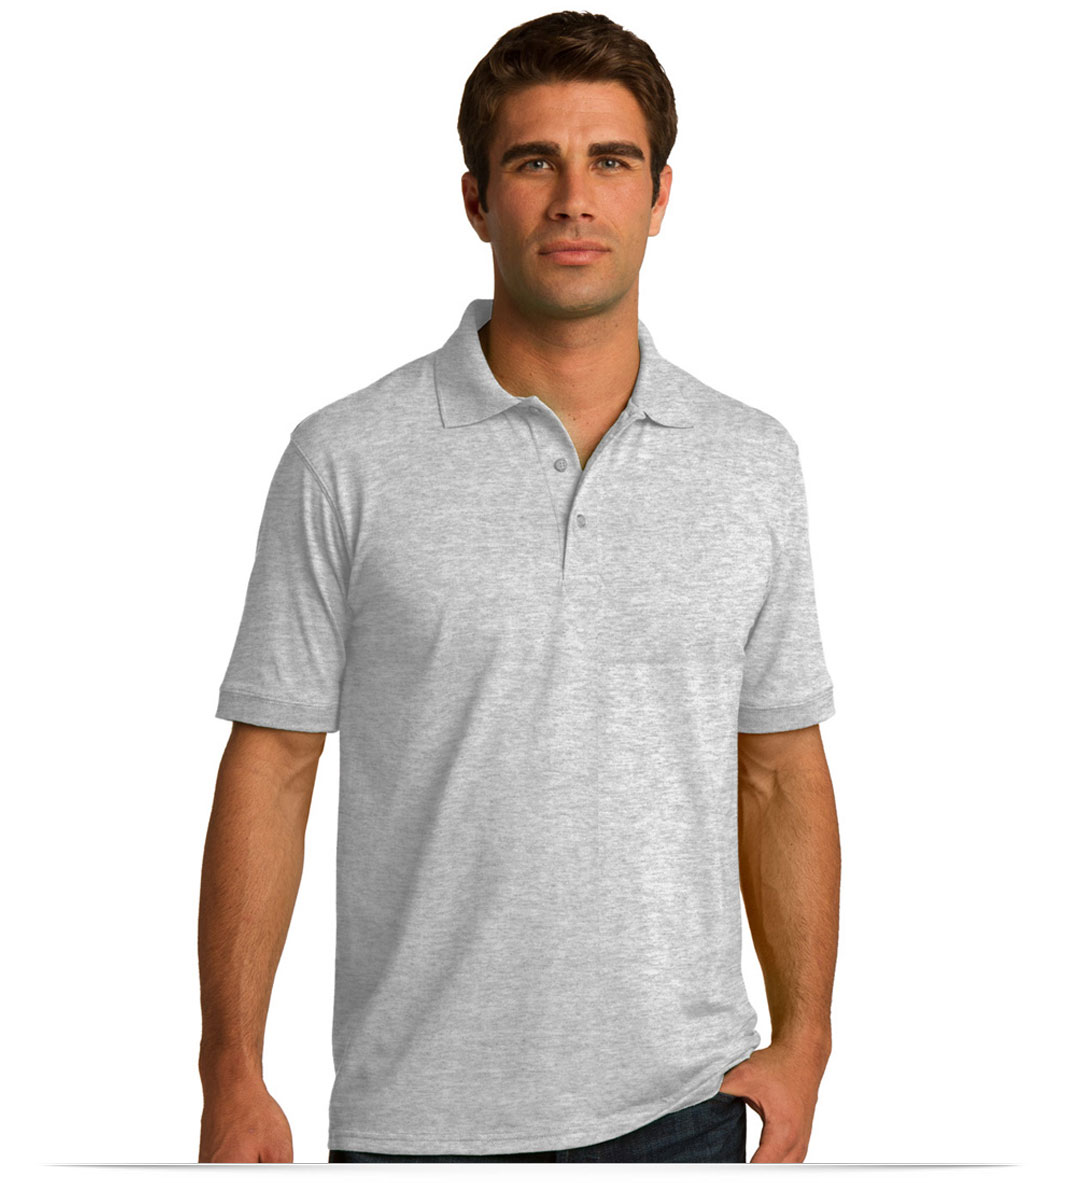 Custom Jersey Knit Polo Shirt